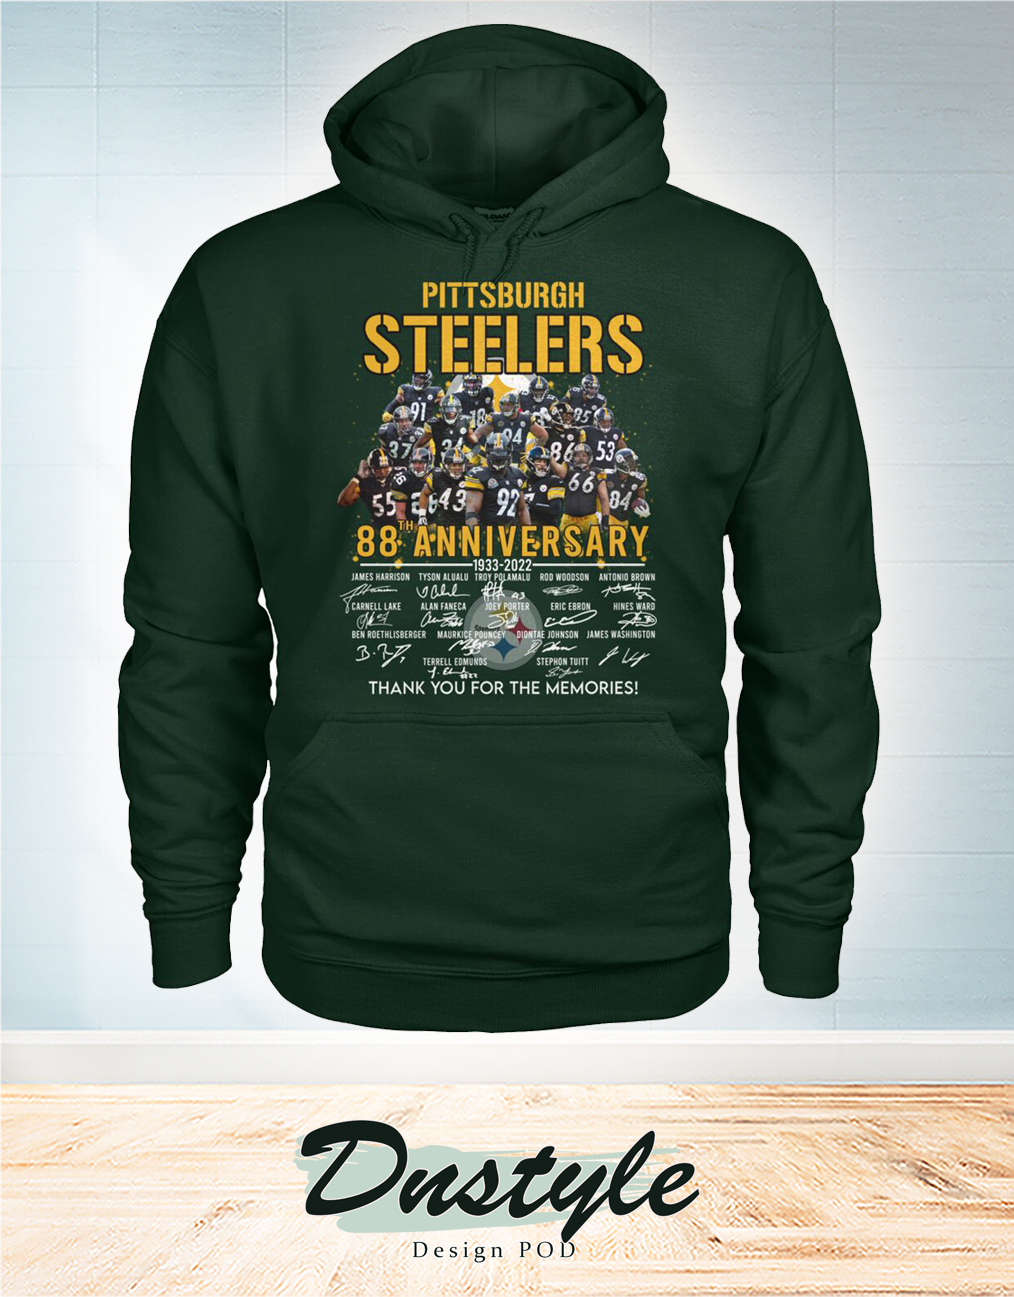 Pittsburgh steelers 88 anniversary signature thank you for the memories hoodie